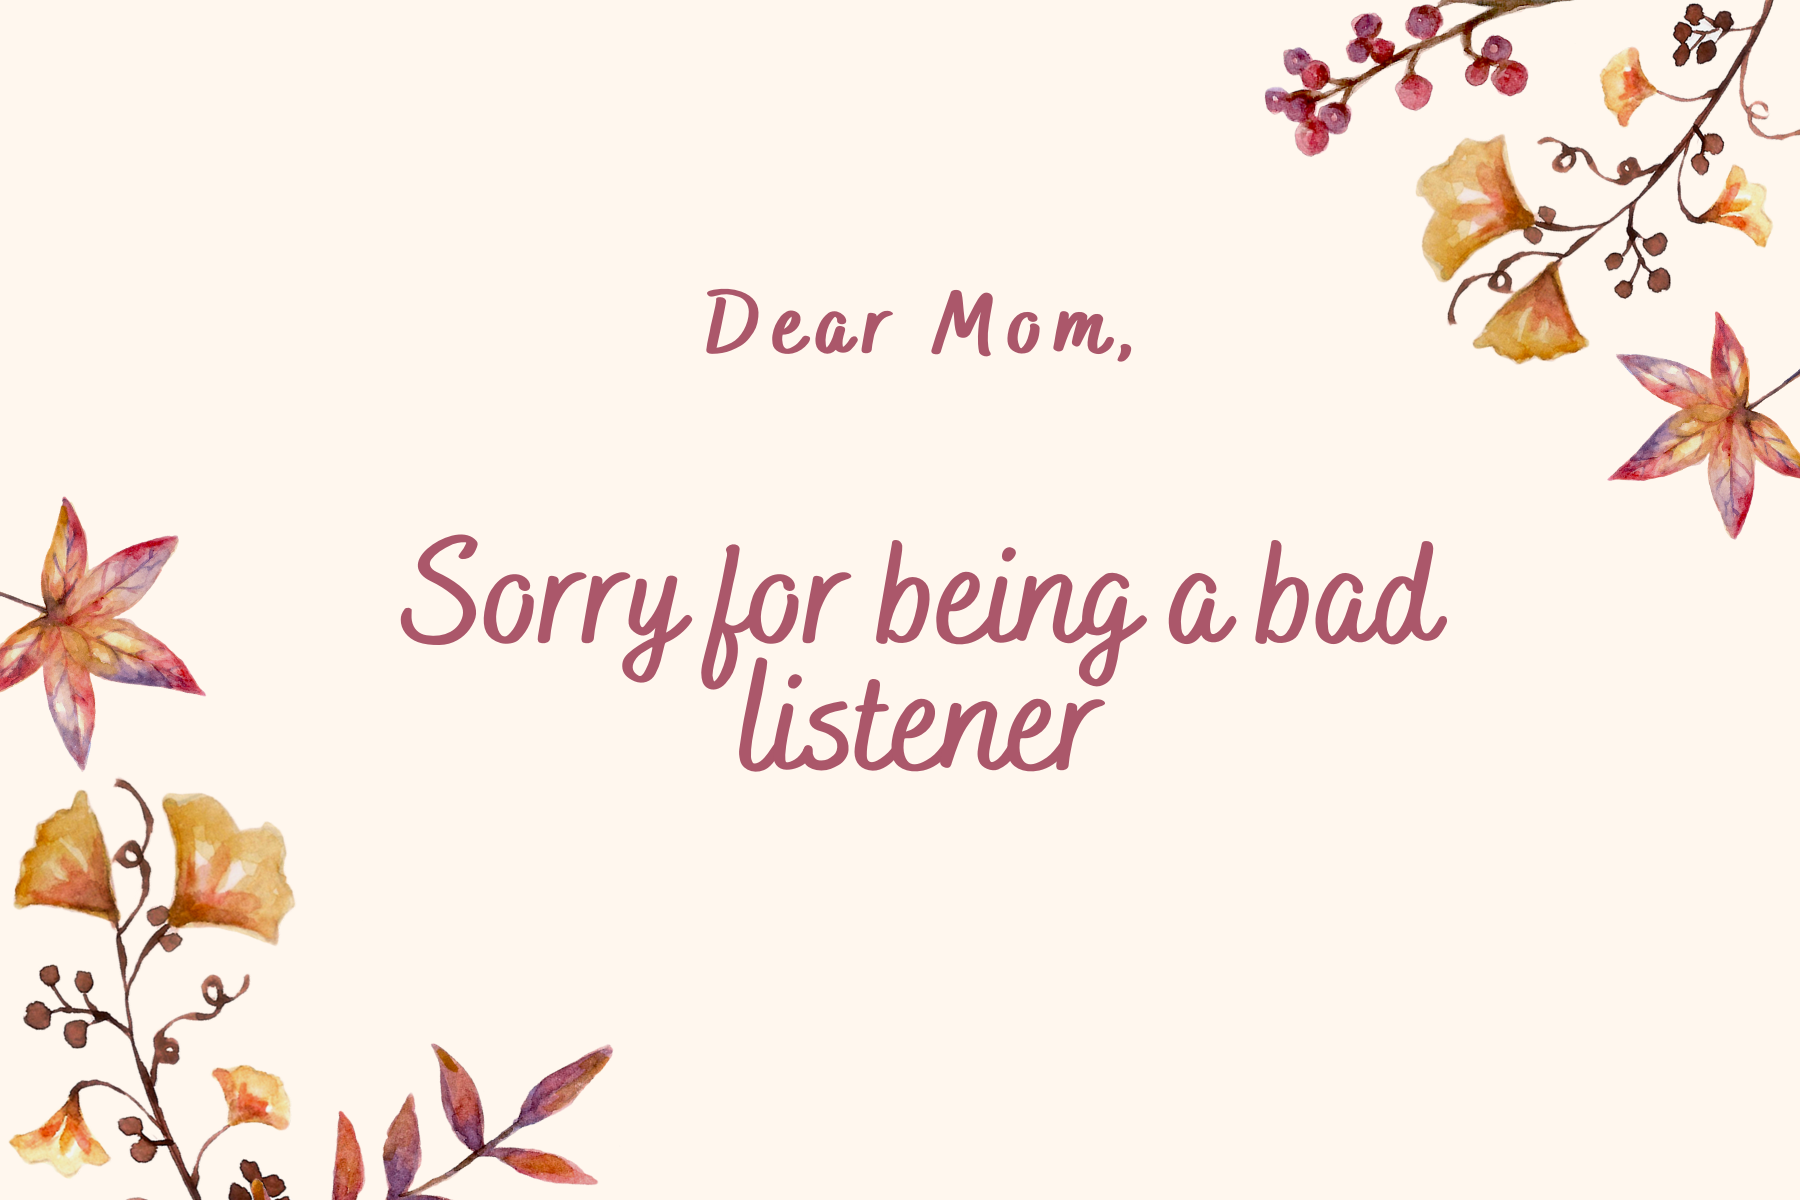 Sorry for being a bad listener